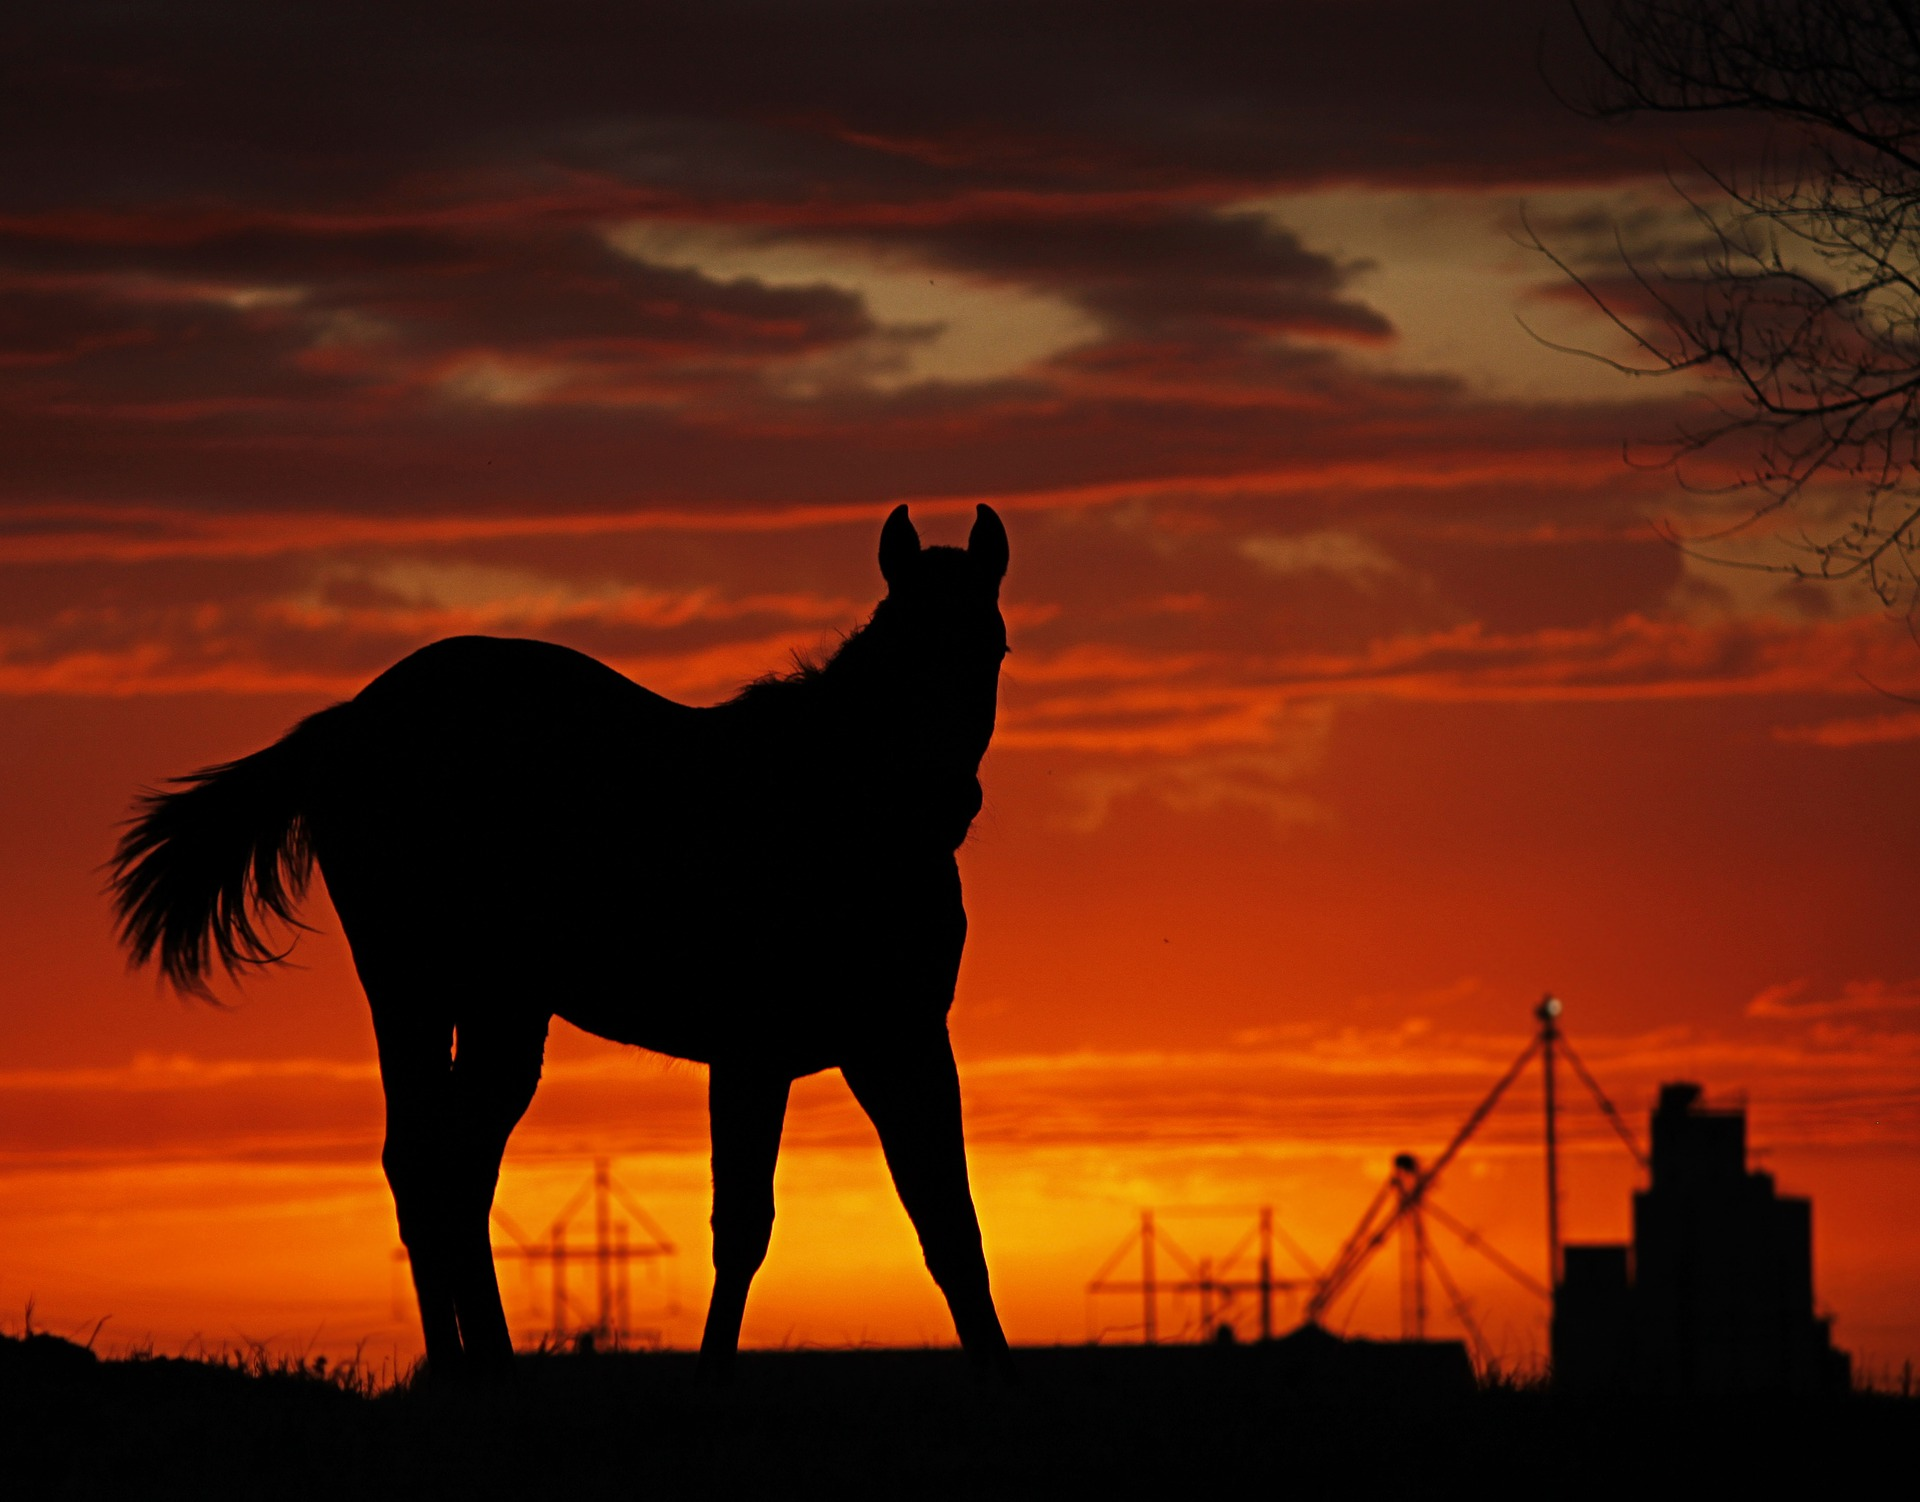 Horse silhouetted against crimson sky.